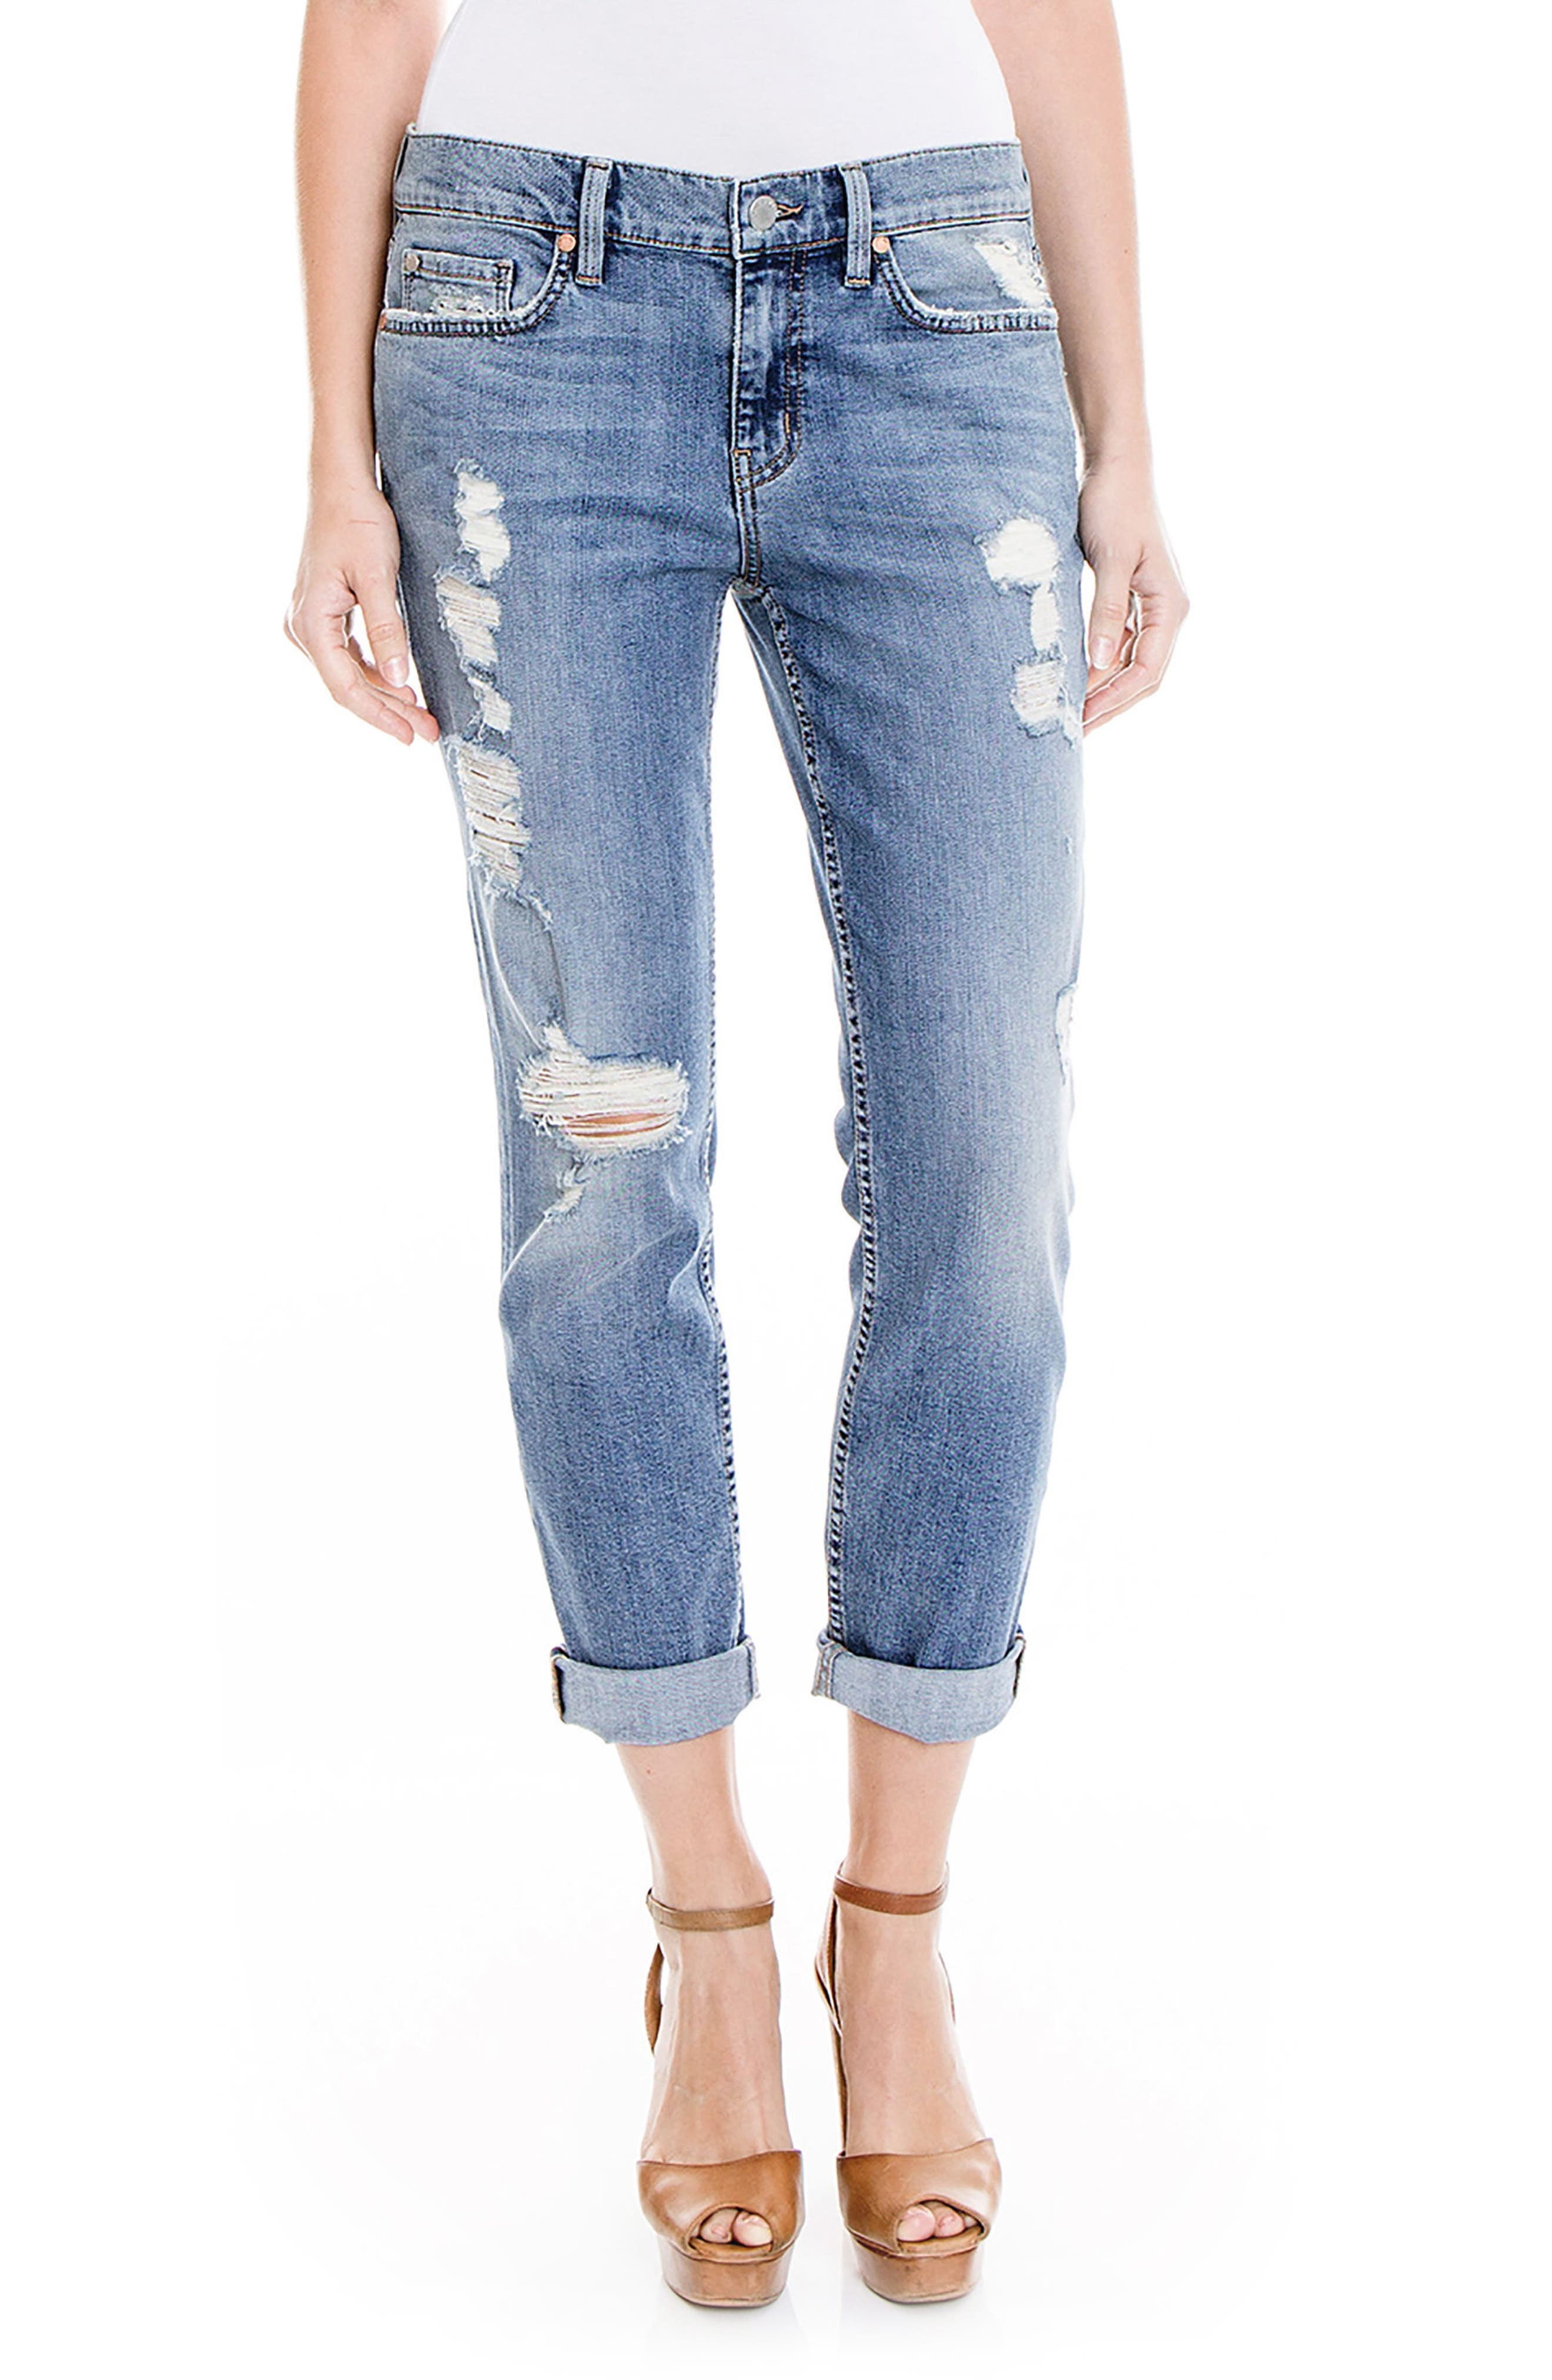 Main Image - Level 99 Sienna Stretch Distressed Ankle Cuff Jeans